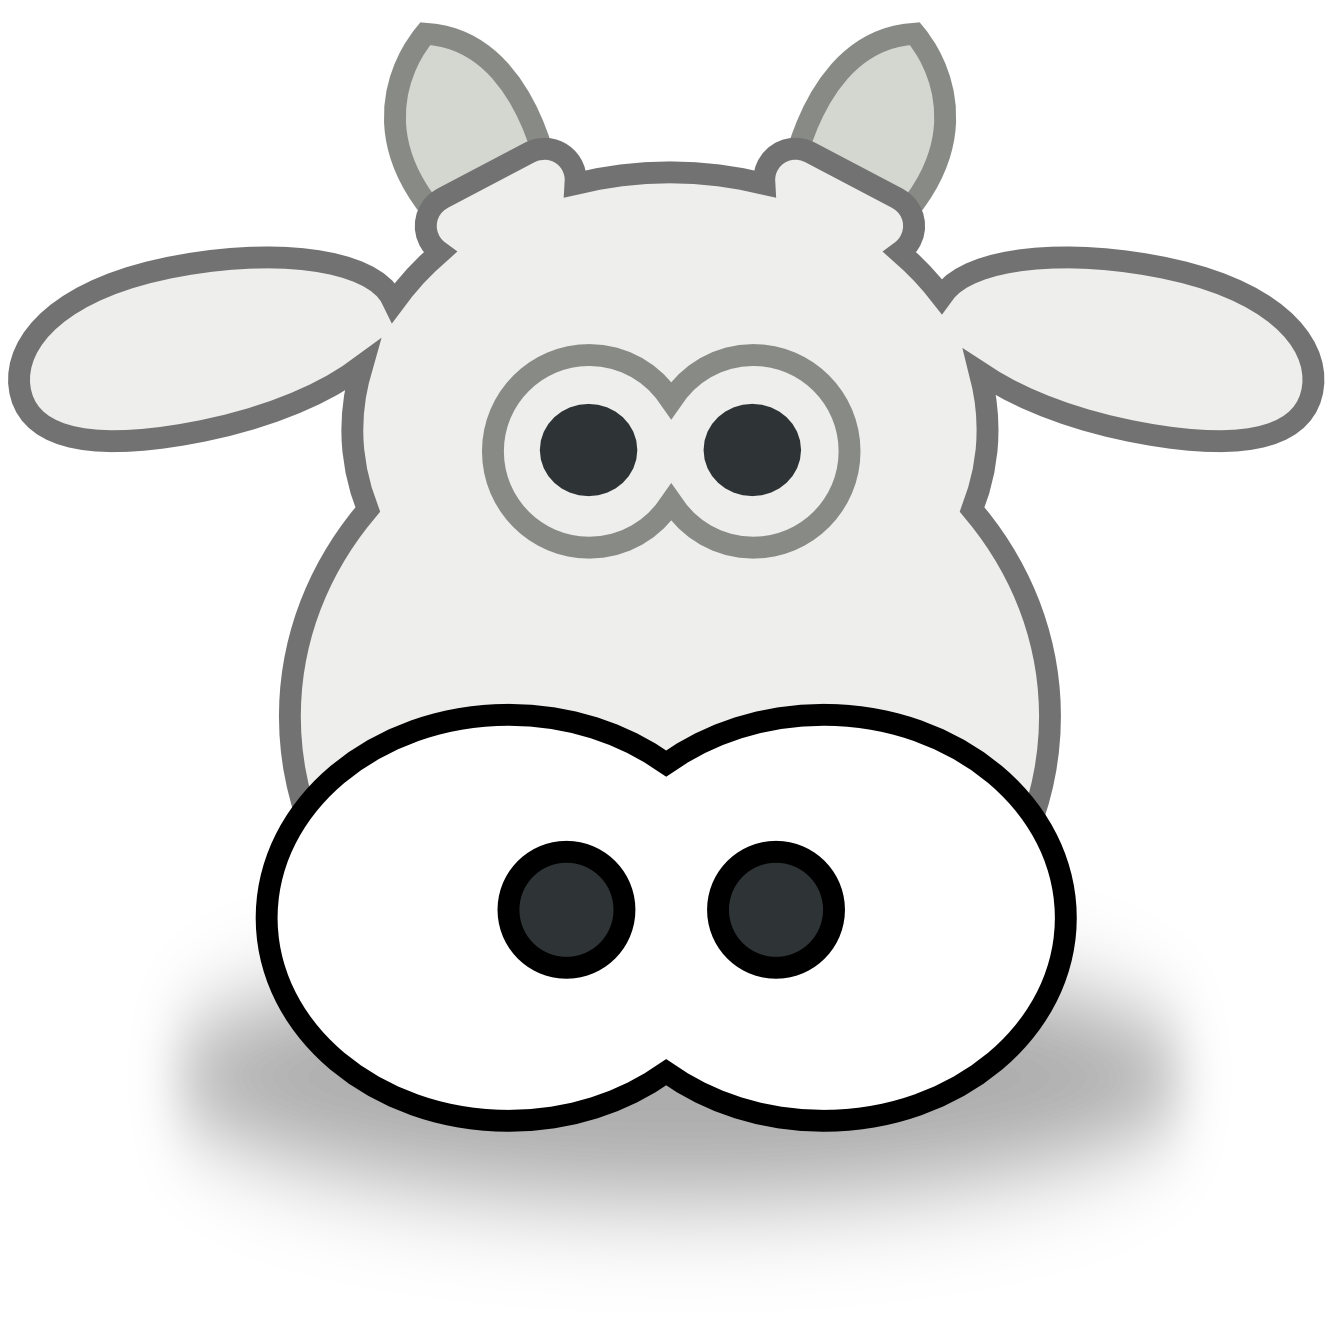 Line Drawing Of Animal Faces : Cow face clipart panda free images